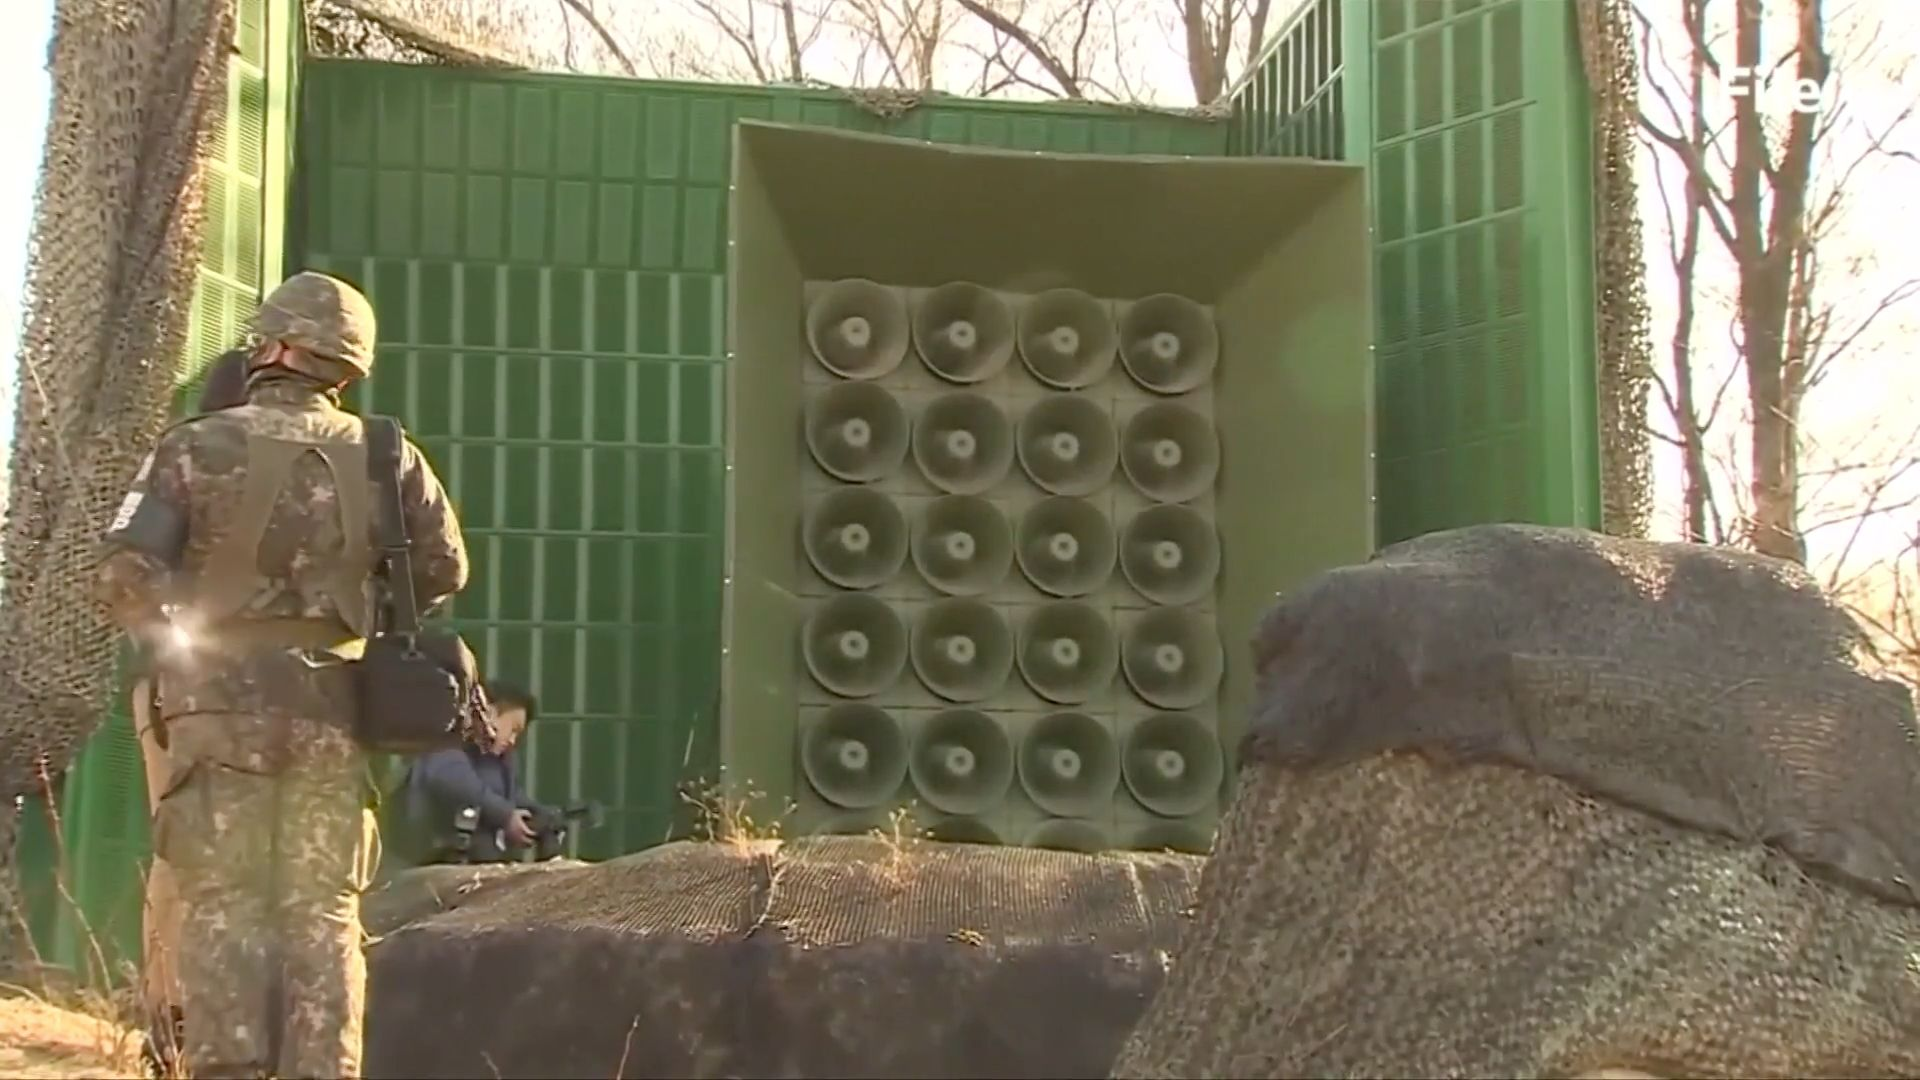 South Korea has reportedly been broadcasting updates on the condition of a deflecting North Korean soldier through loud speakers